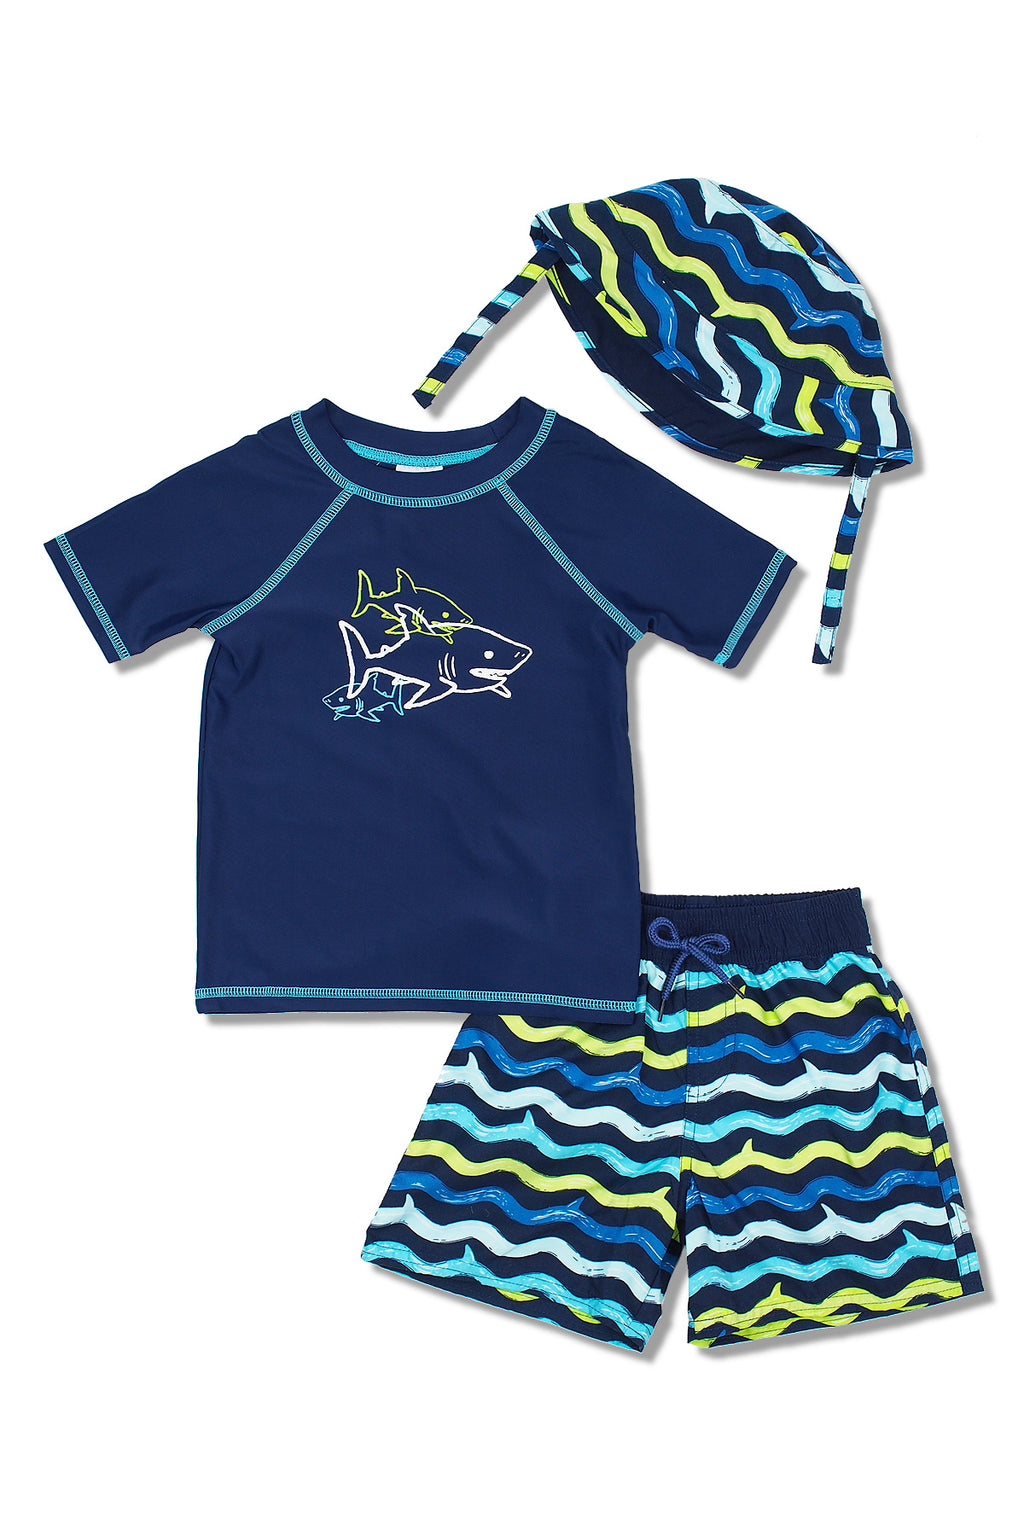 Boys Shark Wave Short Sleeve Rash Guard & Swim Trunks With Bucket Hat 3pc Set, Navy